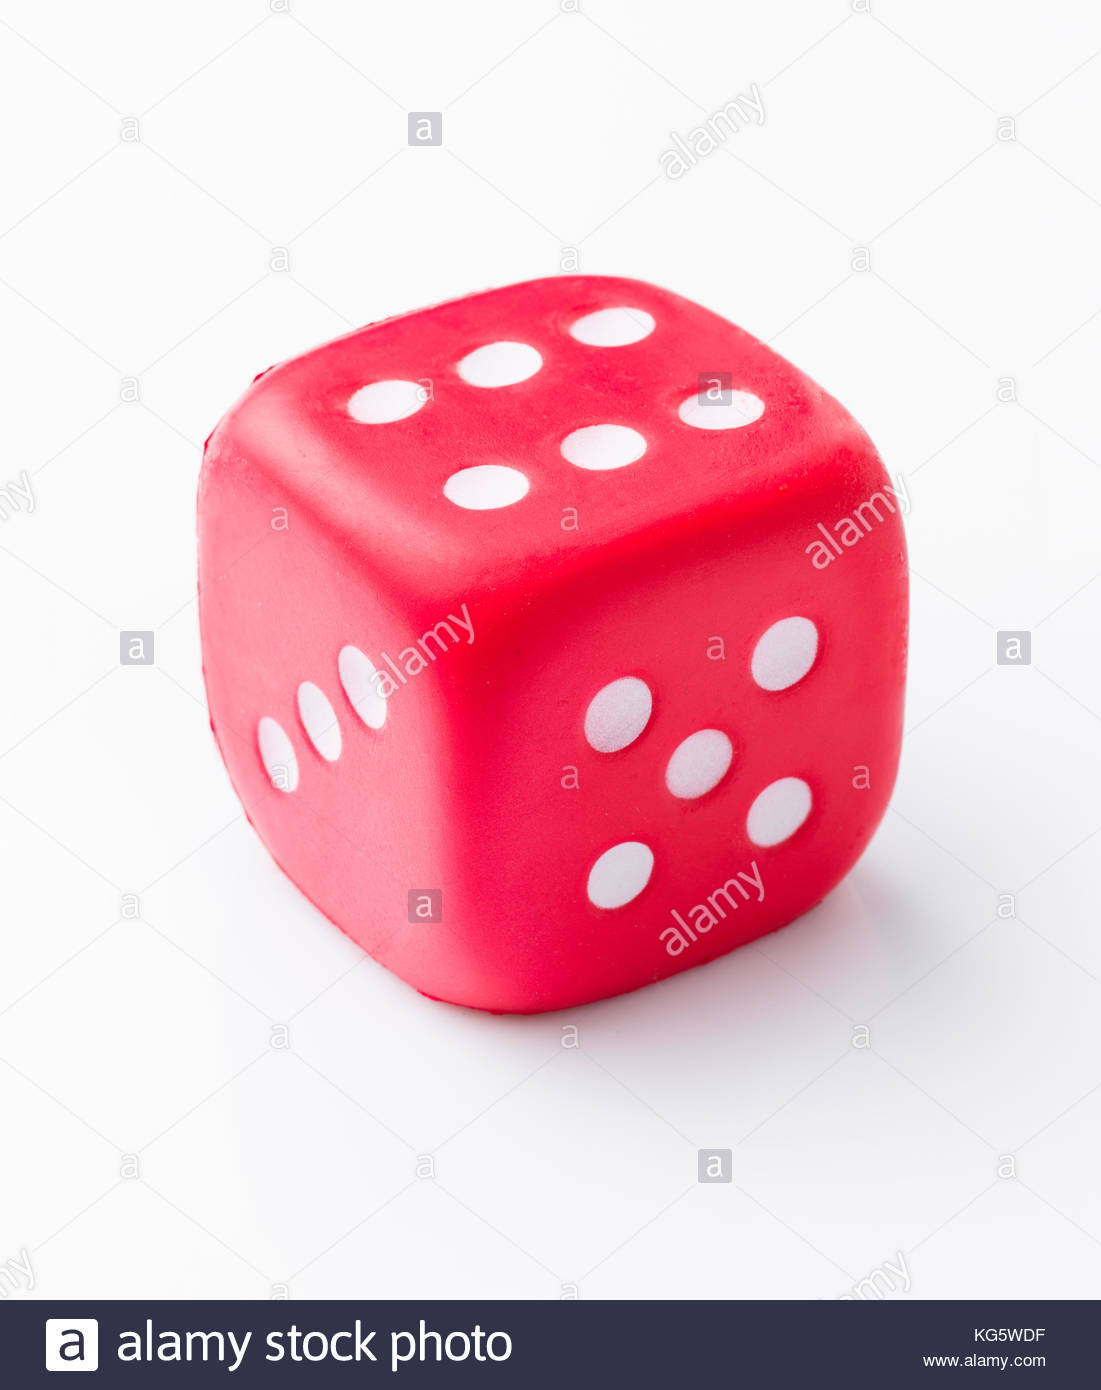 red dice isolated on white background - Stock Image